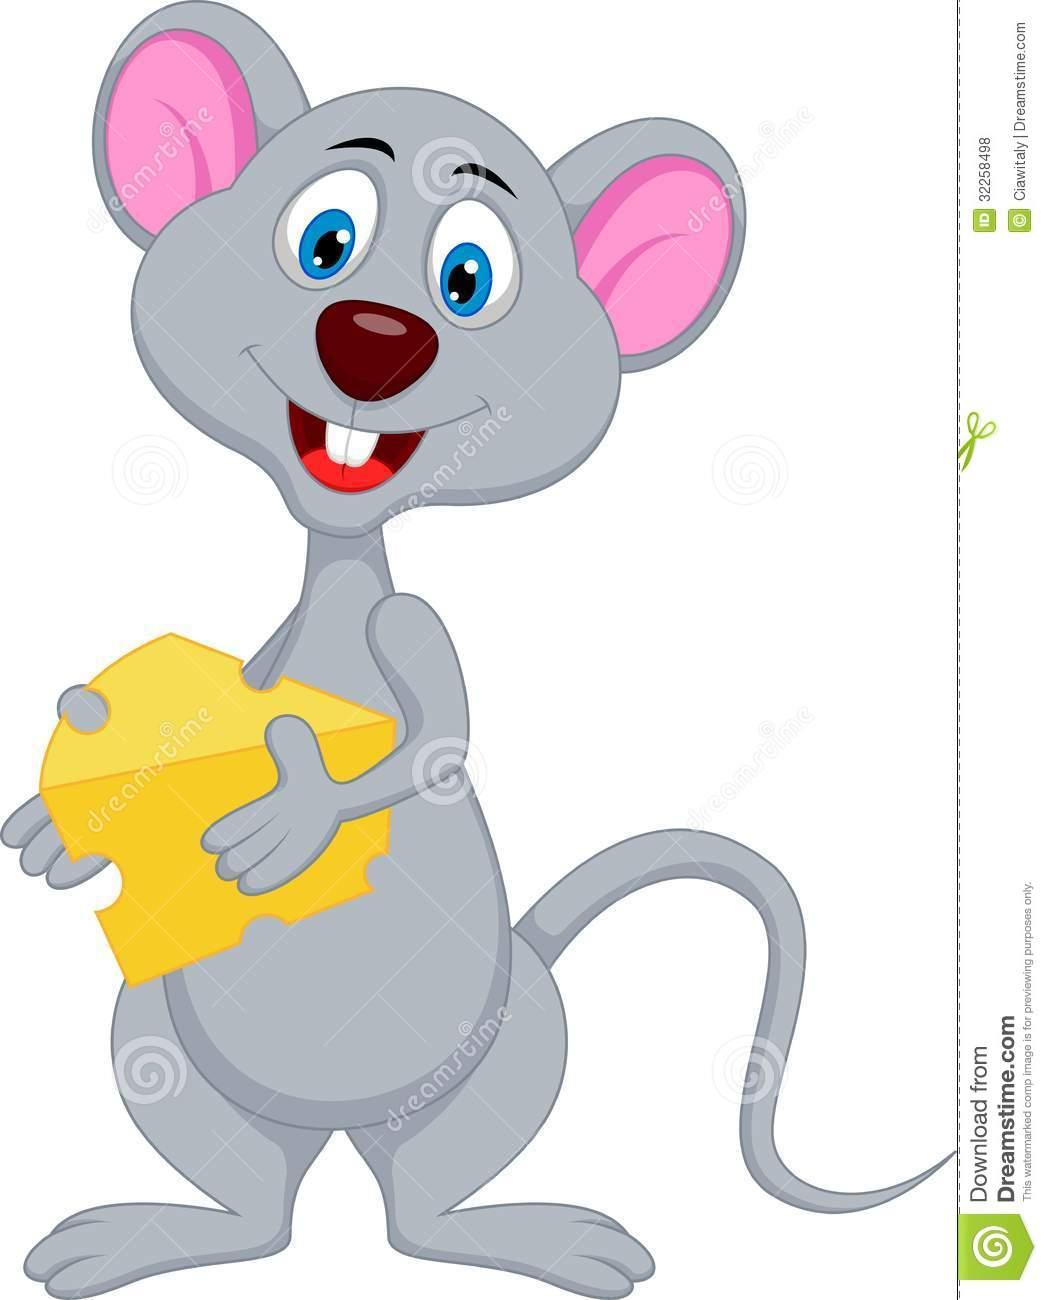 Mouse Cartoon | Clipart Panda - Free Clipart Images